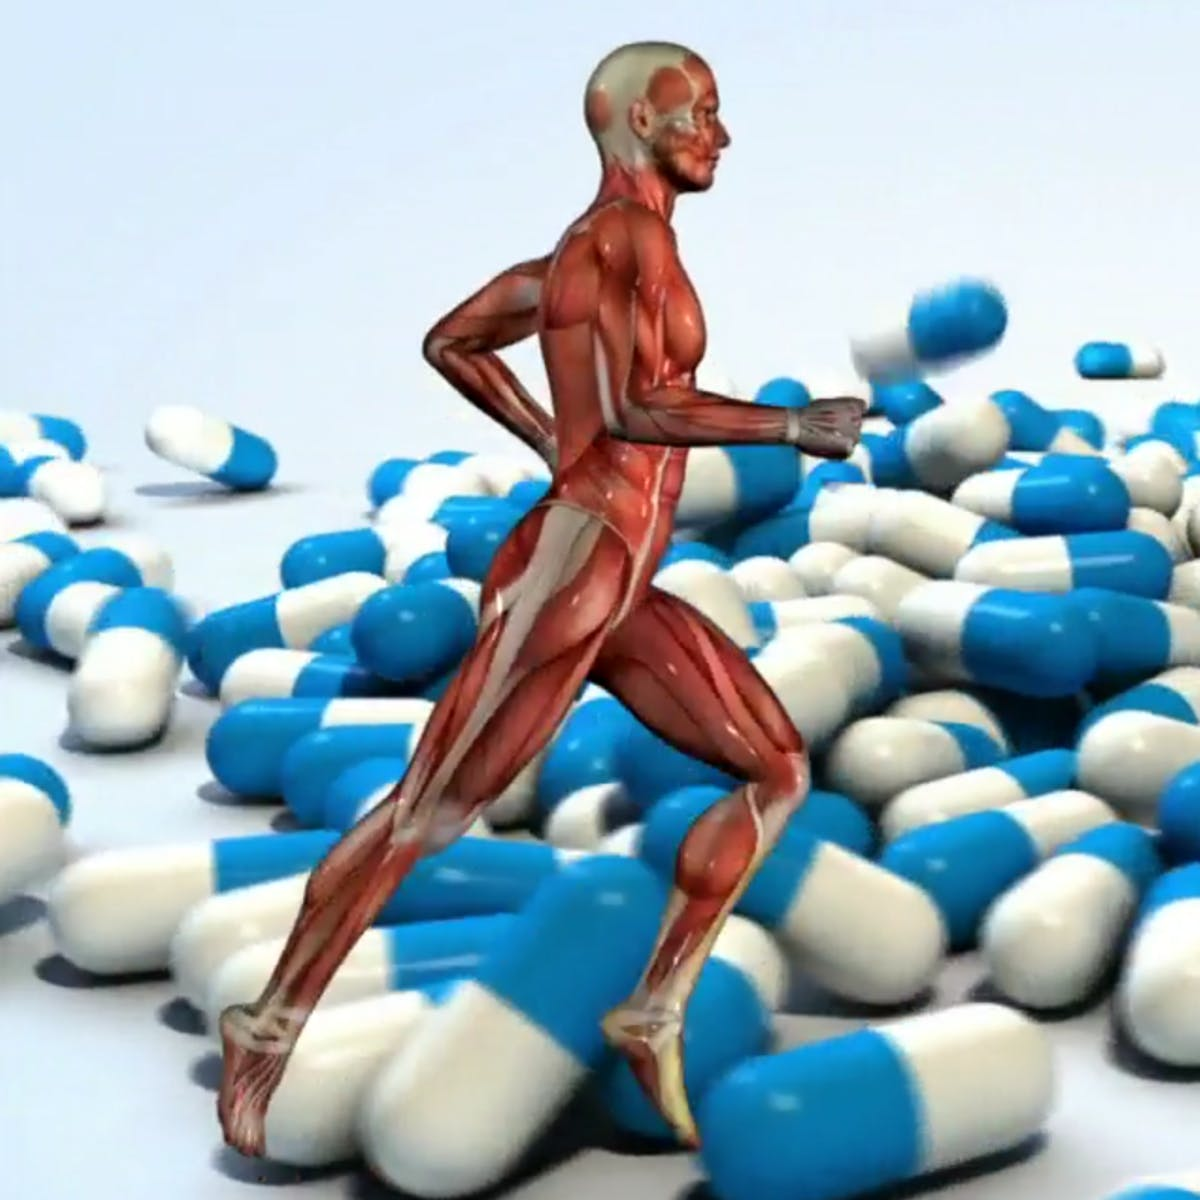 Doping : Sports, Organizations and Sciences